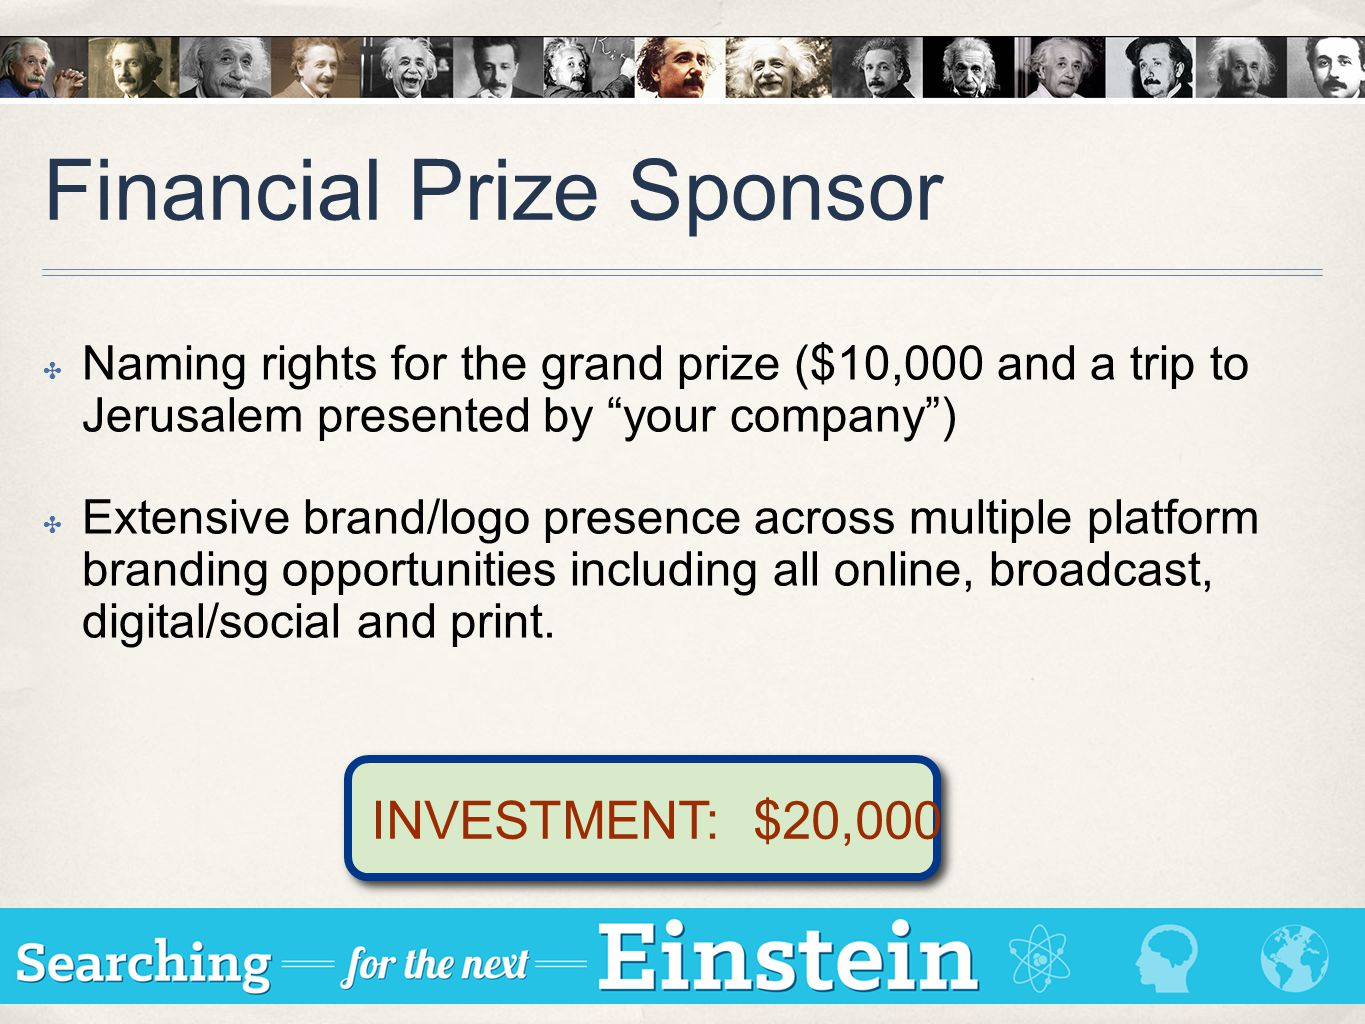 Financial Prize Sponsor ✤ Naming rights for the grand prize ($10,000 and a trip to Jerusalem presented by your company ) ✤ Extensive brand/logo presence across multiple platform branding opportunities including all online, broadcast, digital/social and print.